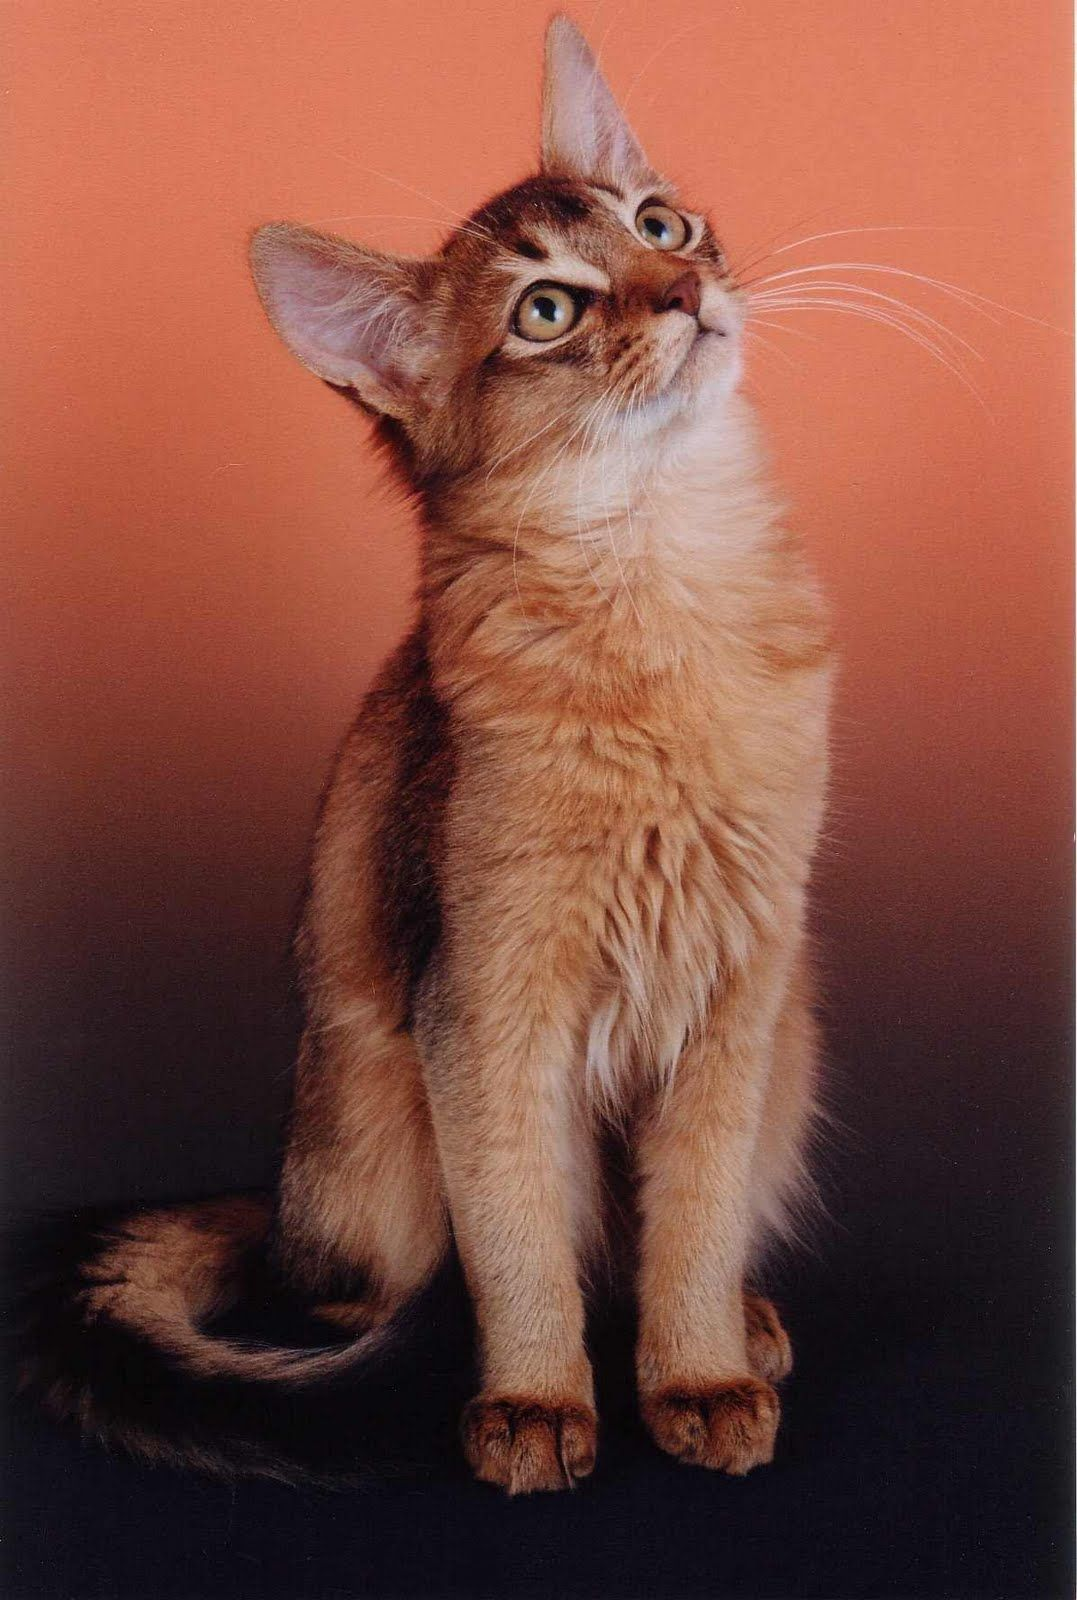 Somali is a cat breed created from long-haired Abyssinian cats ...